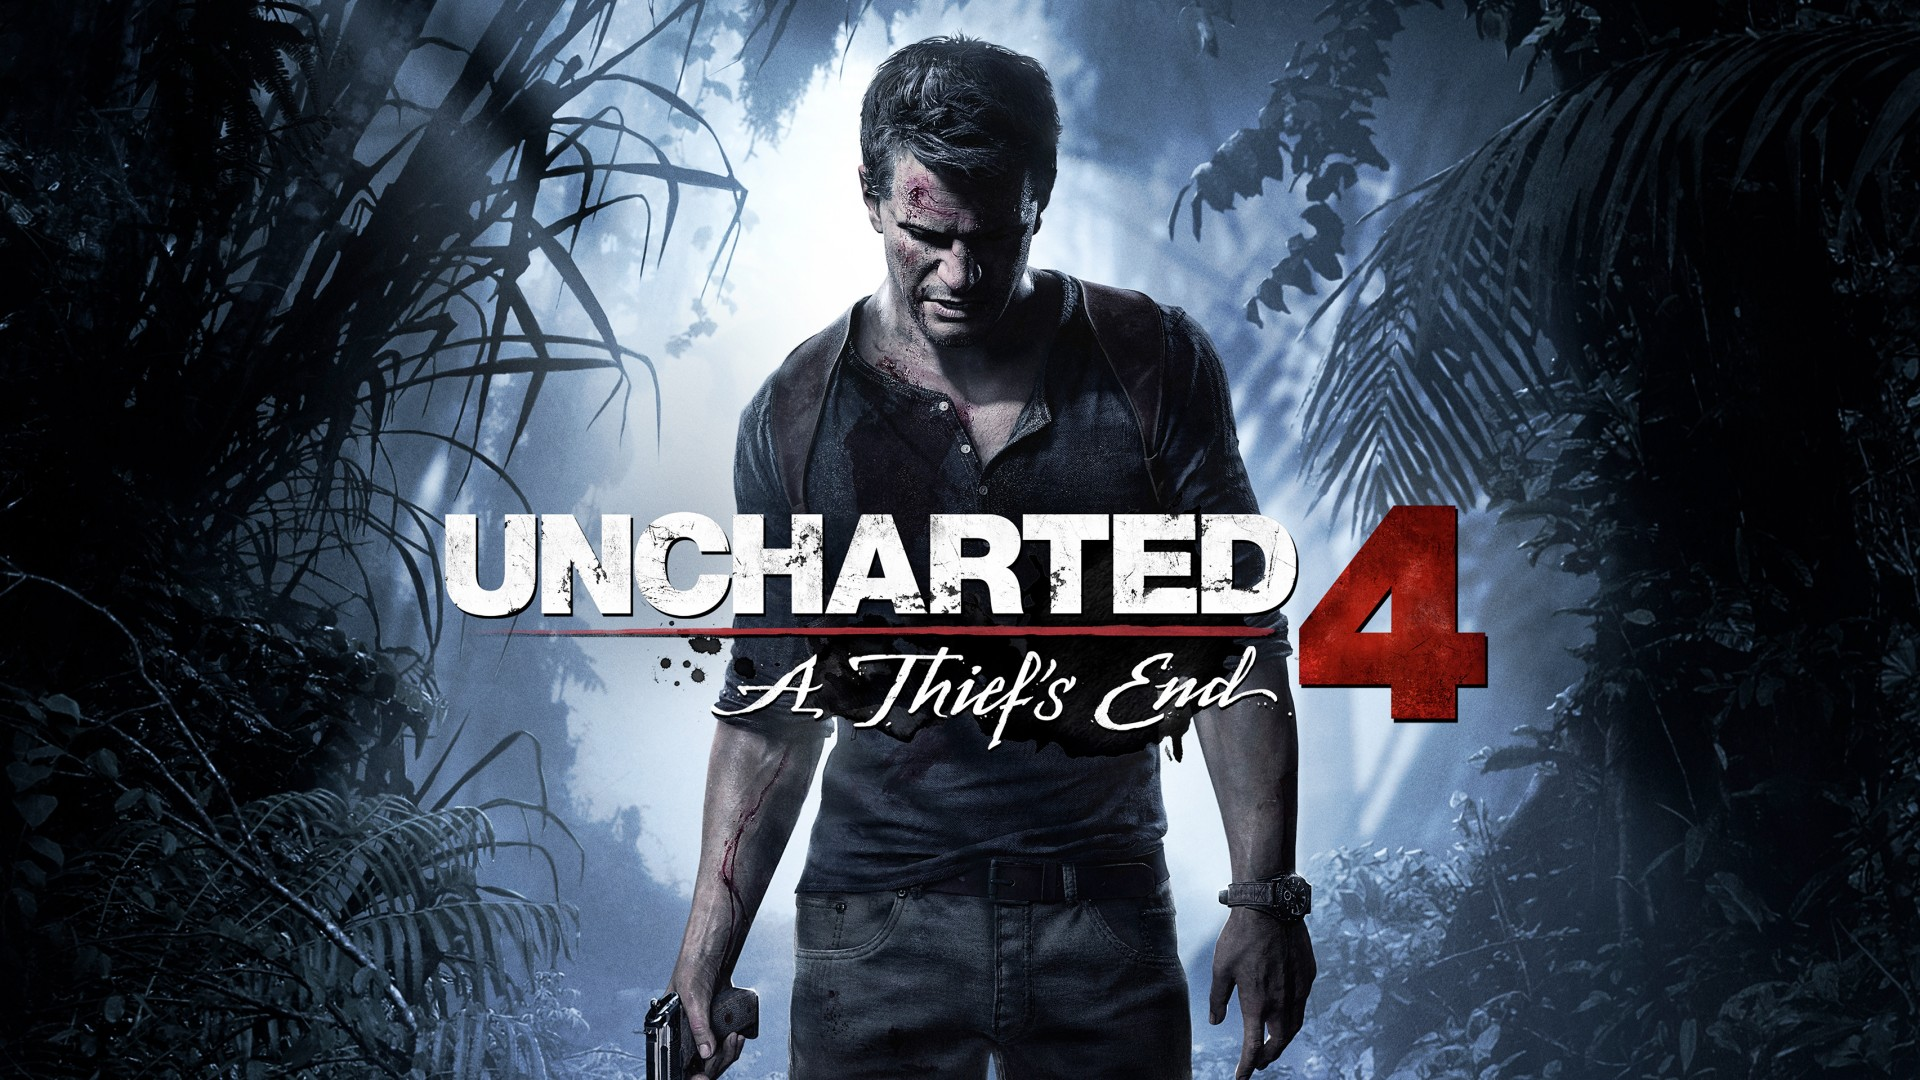 UNCHARTED 4: A THIEF'S END PC